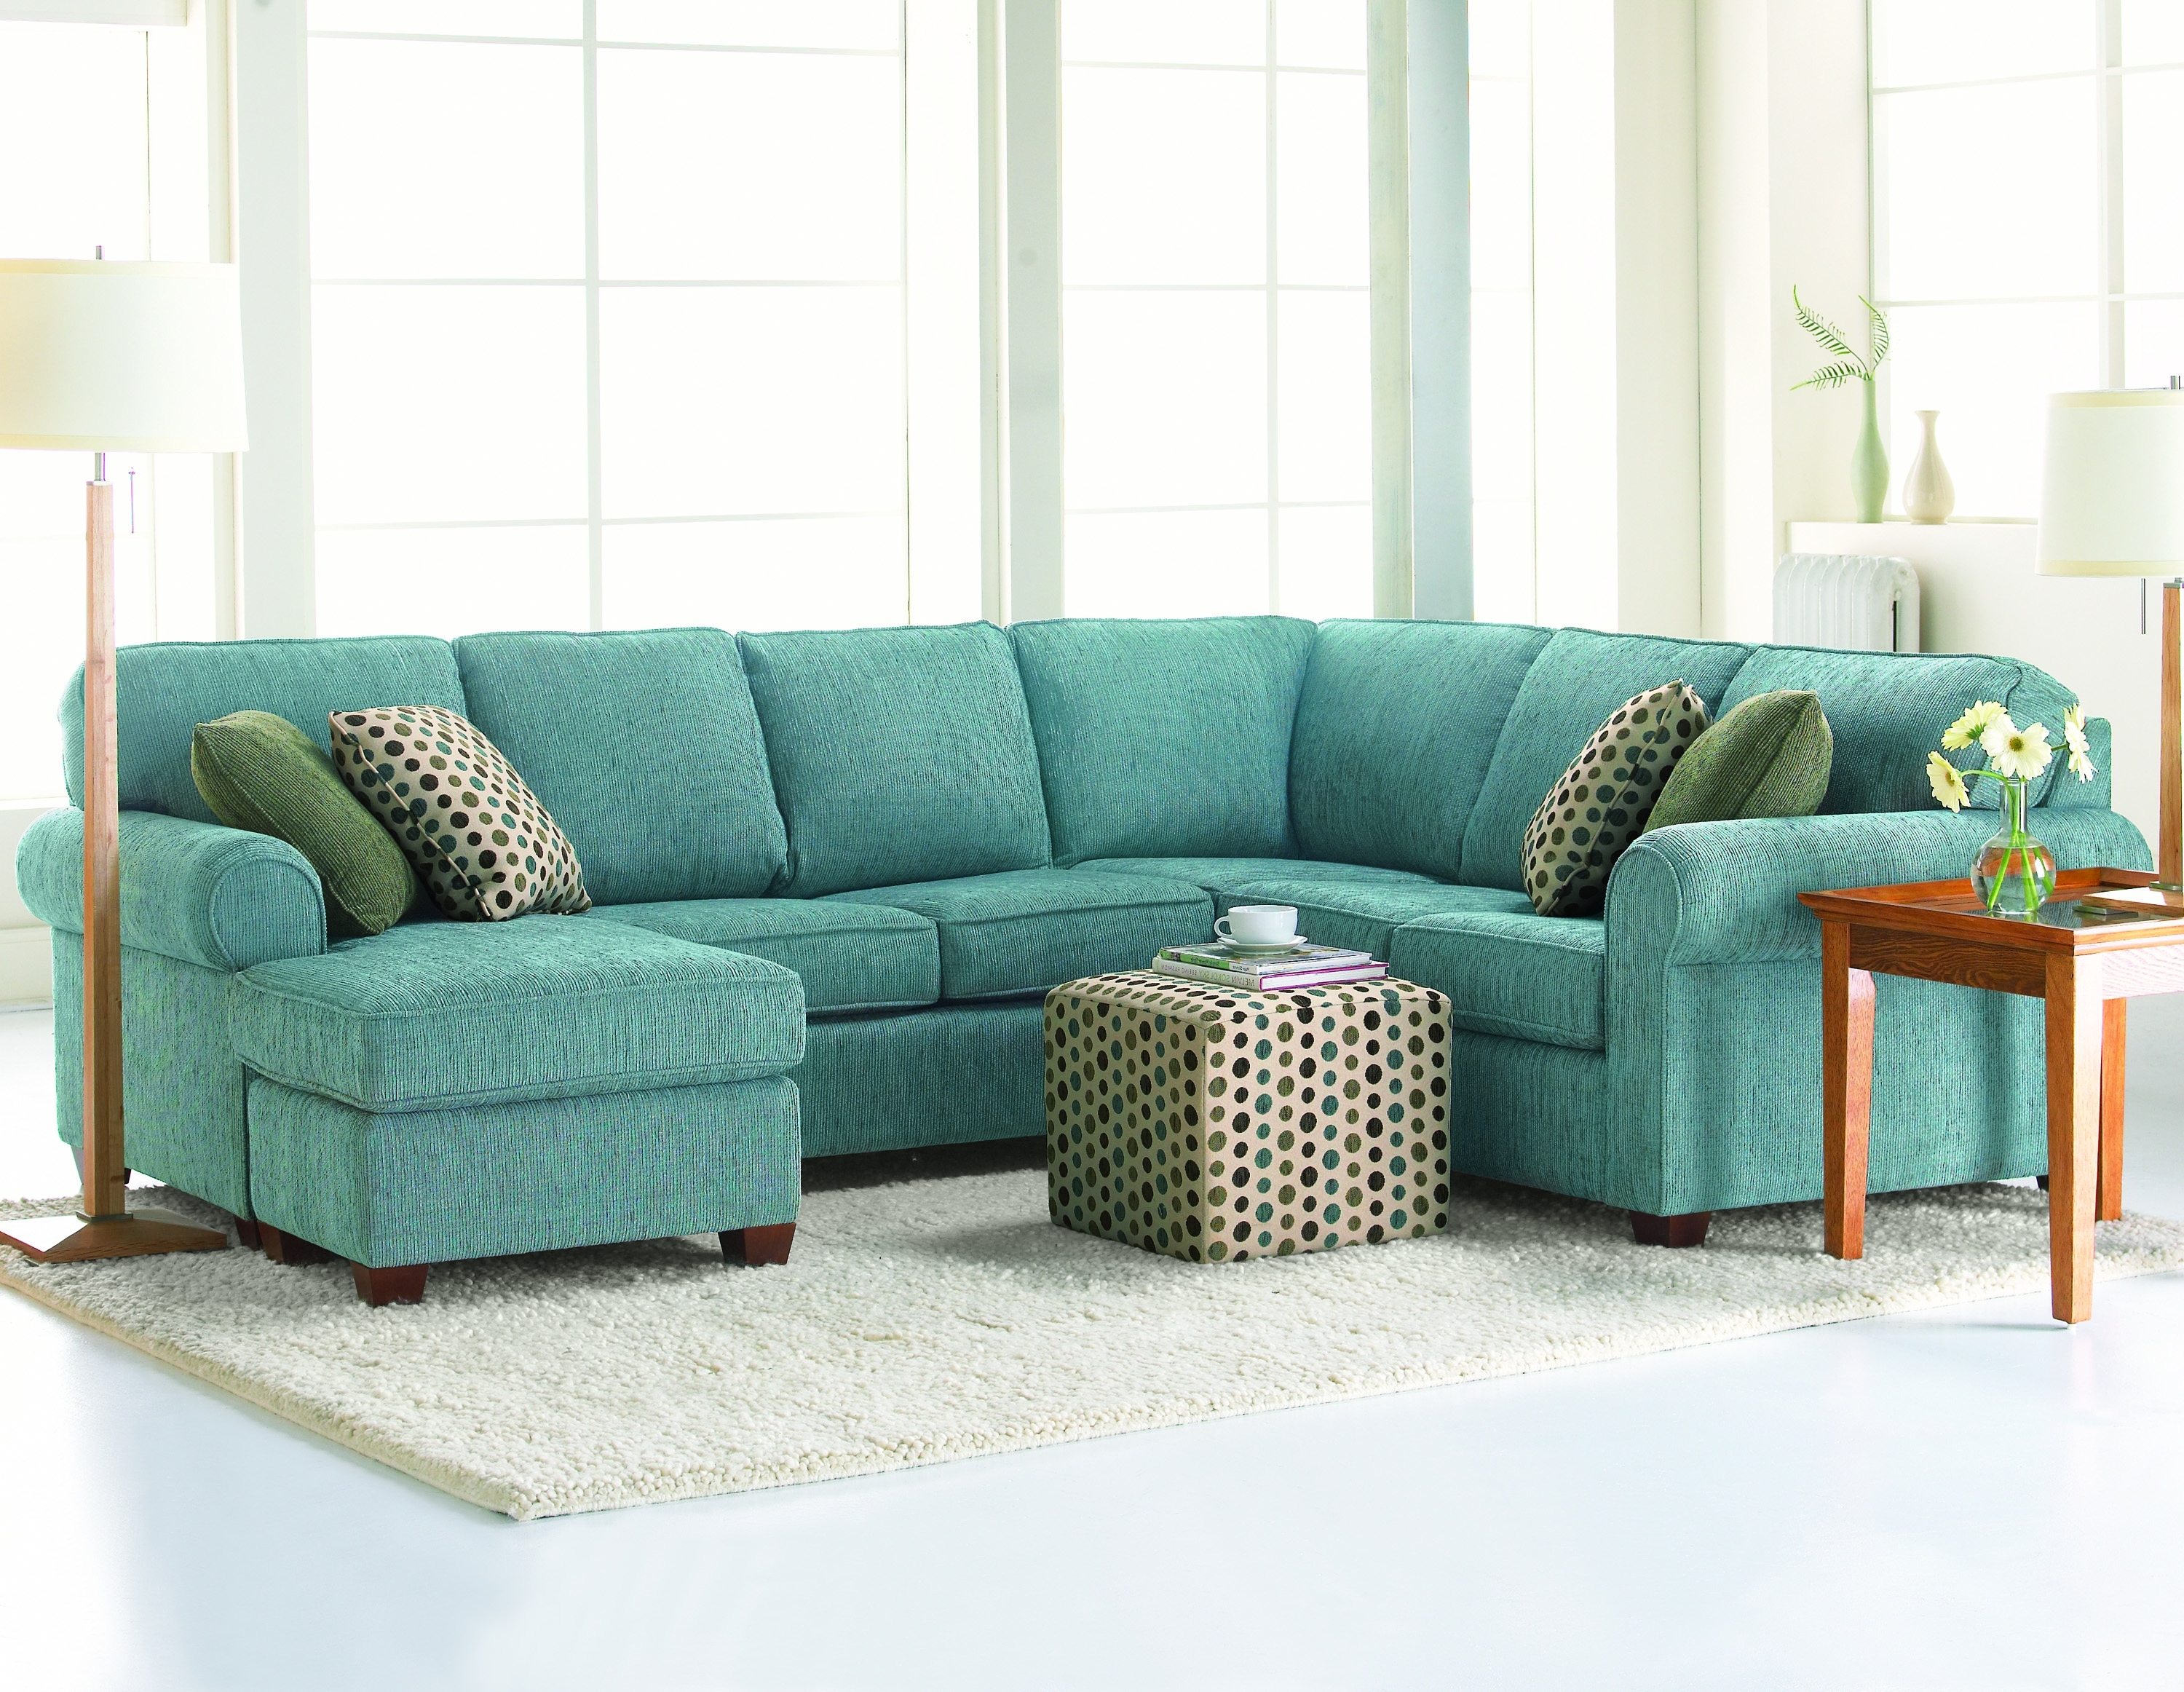 2019 Newmarket Ontario Sectional Sofas Throughout Sectional Sofas – Thompson Brothers Furniture (View 1 of 20)